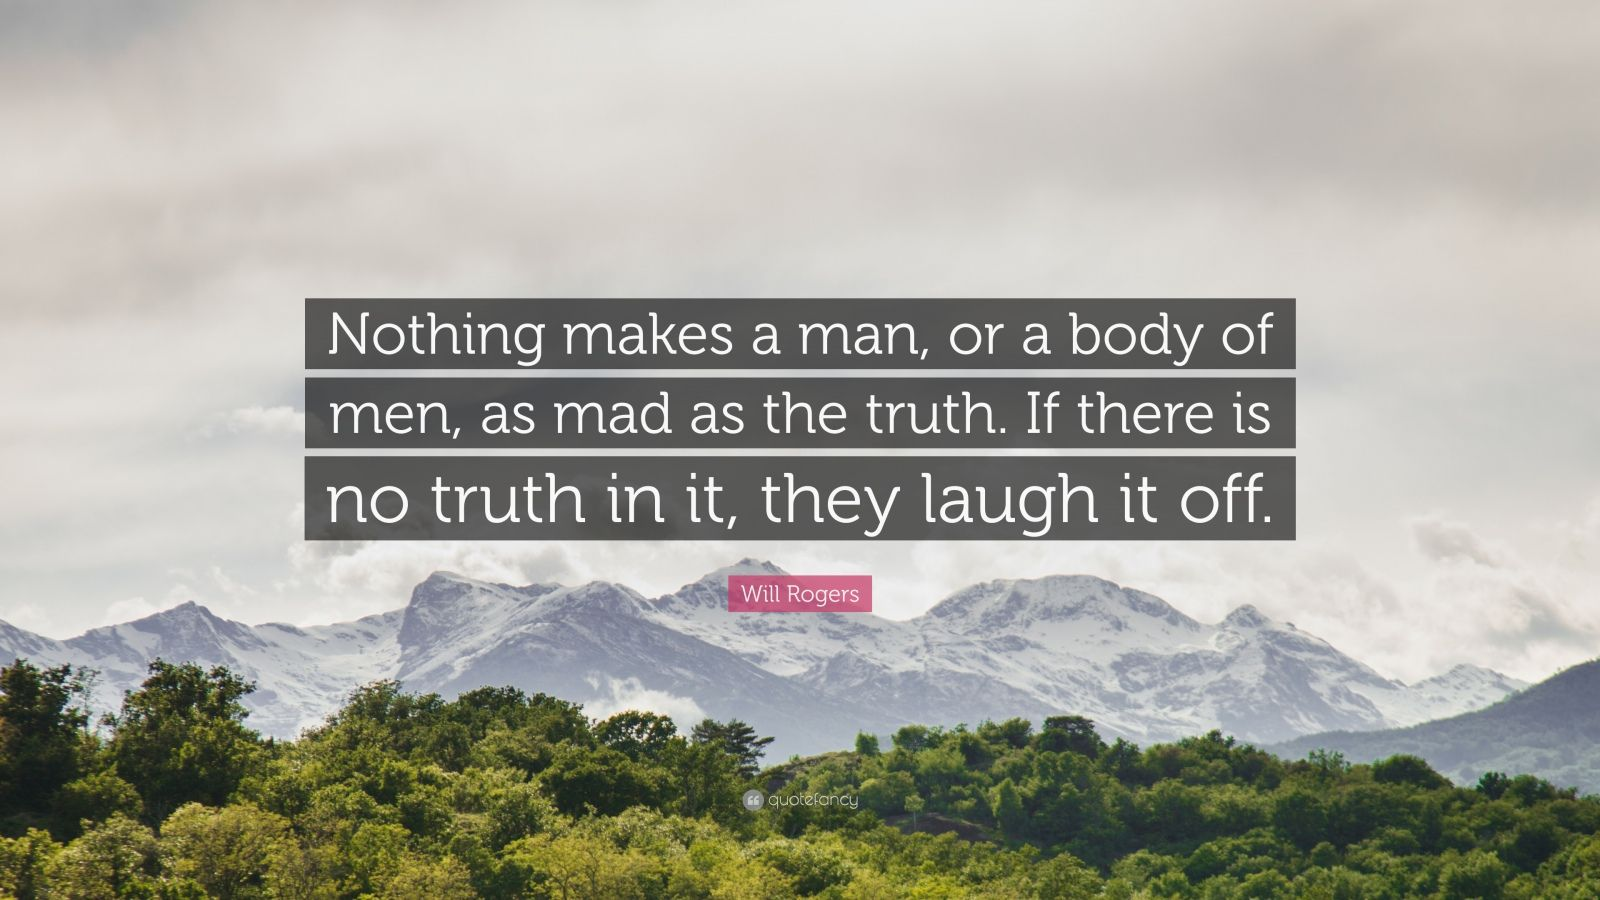 """Will Rogers Quote: """"Nothing makes a man, or a body of men, as mad as the truth. If there is no truth in it, they laugh it off."""""""